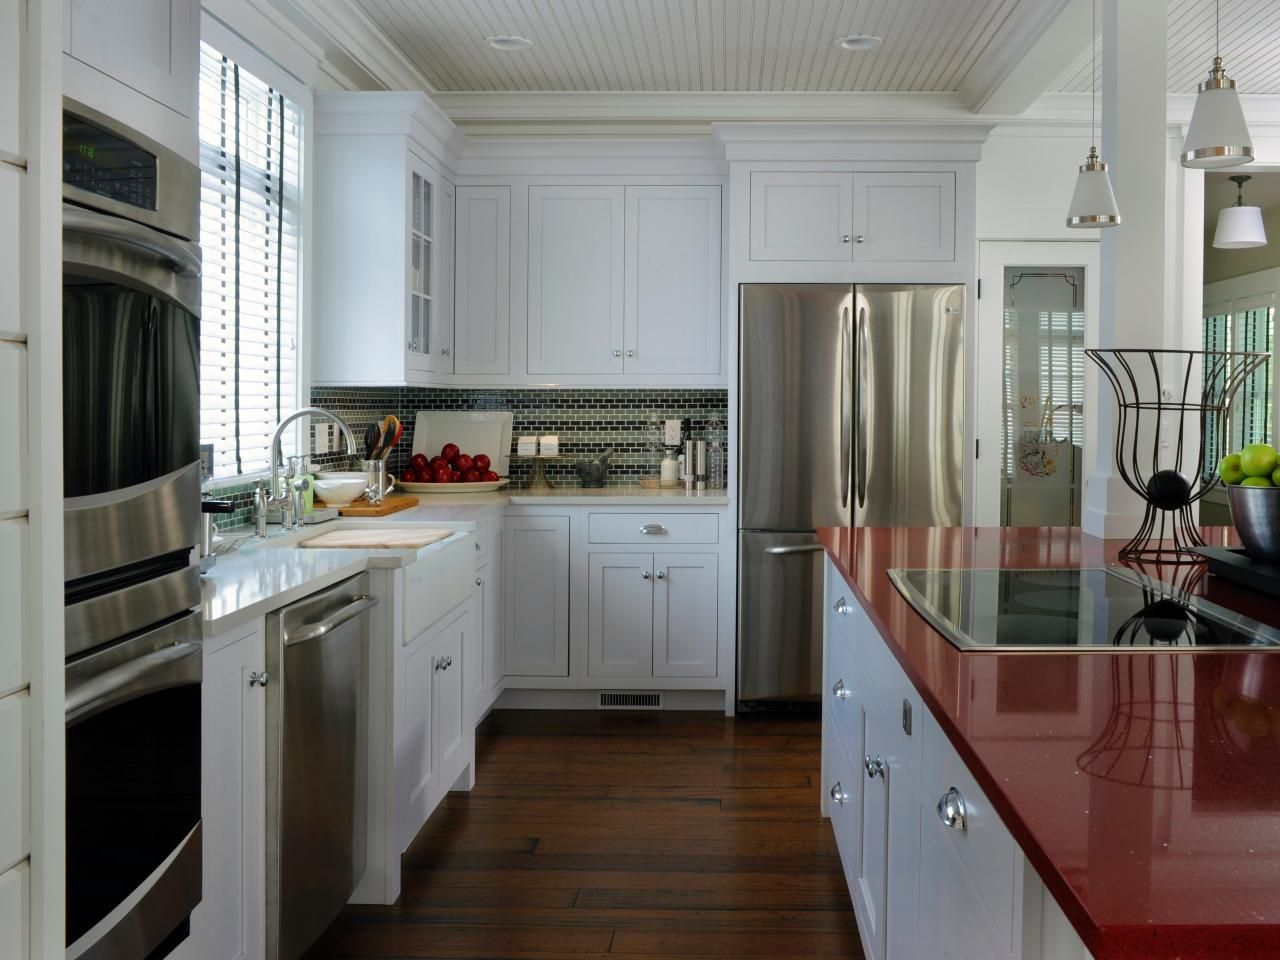 The New Countertop Contender - Red countertop